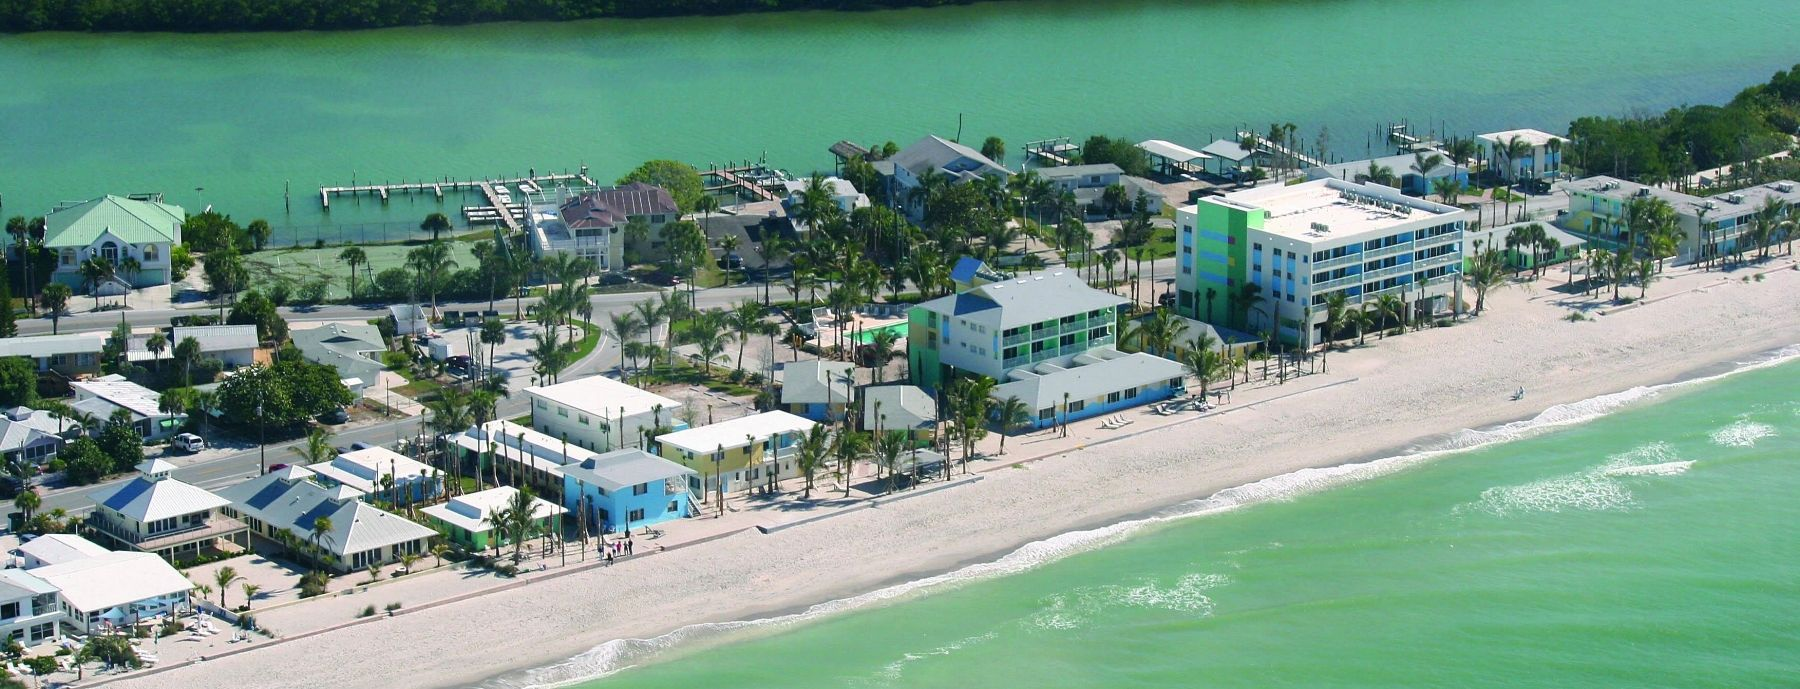 Pin by Paul Andrews-Southwest Florida on Florida Vacations ...